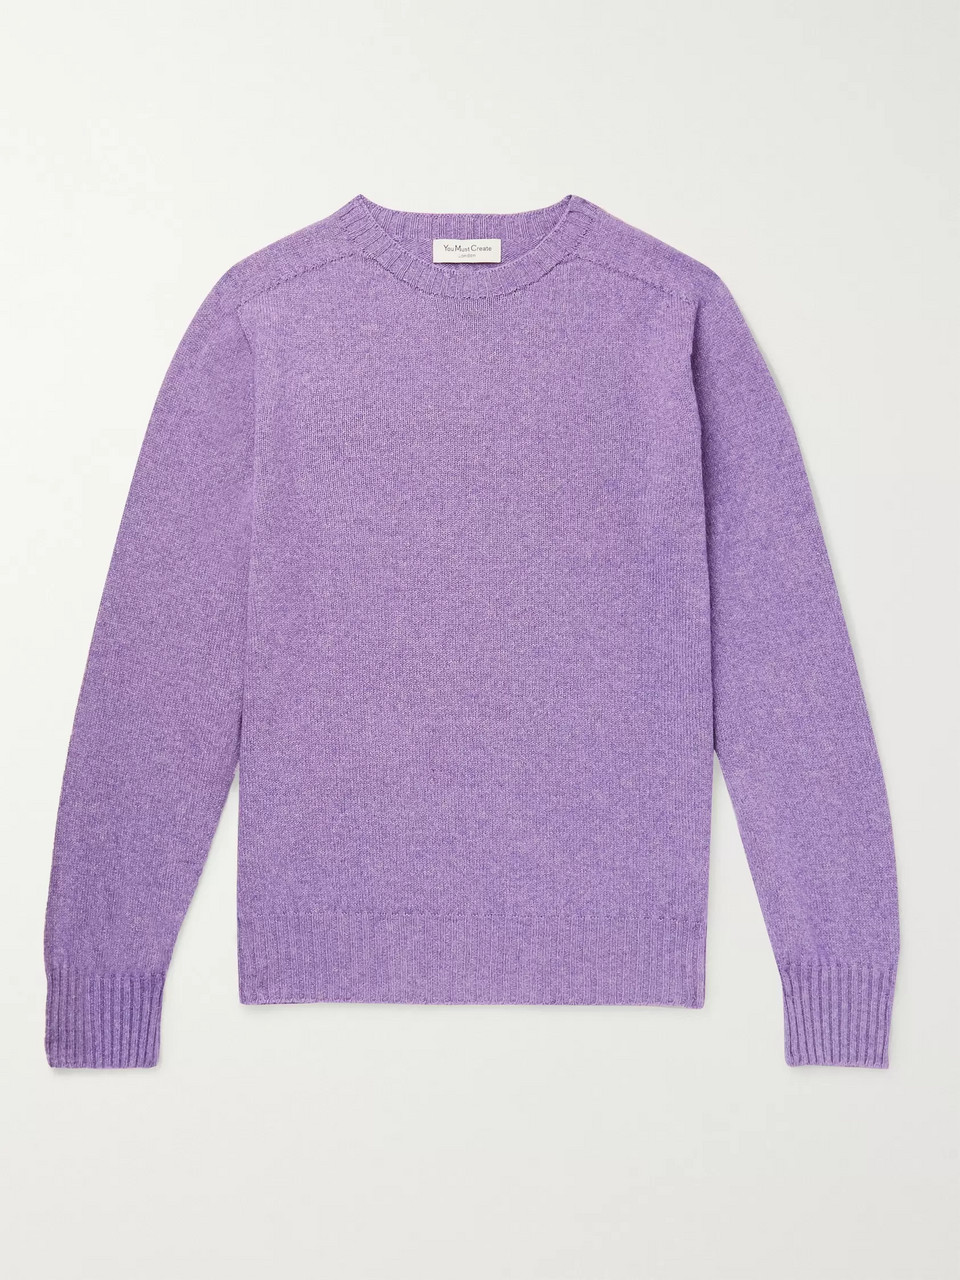 YMC Wool and Cotton-Blend Sweater